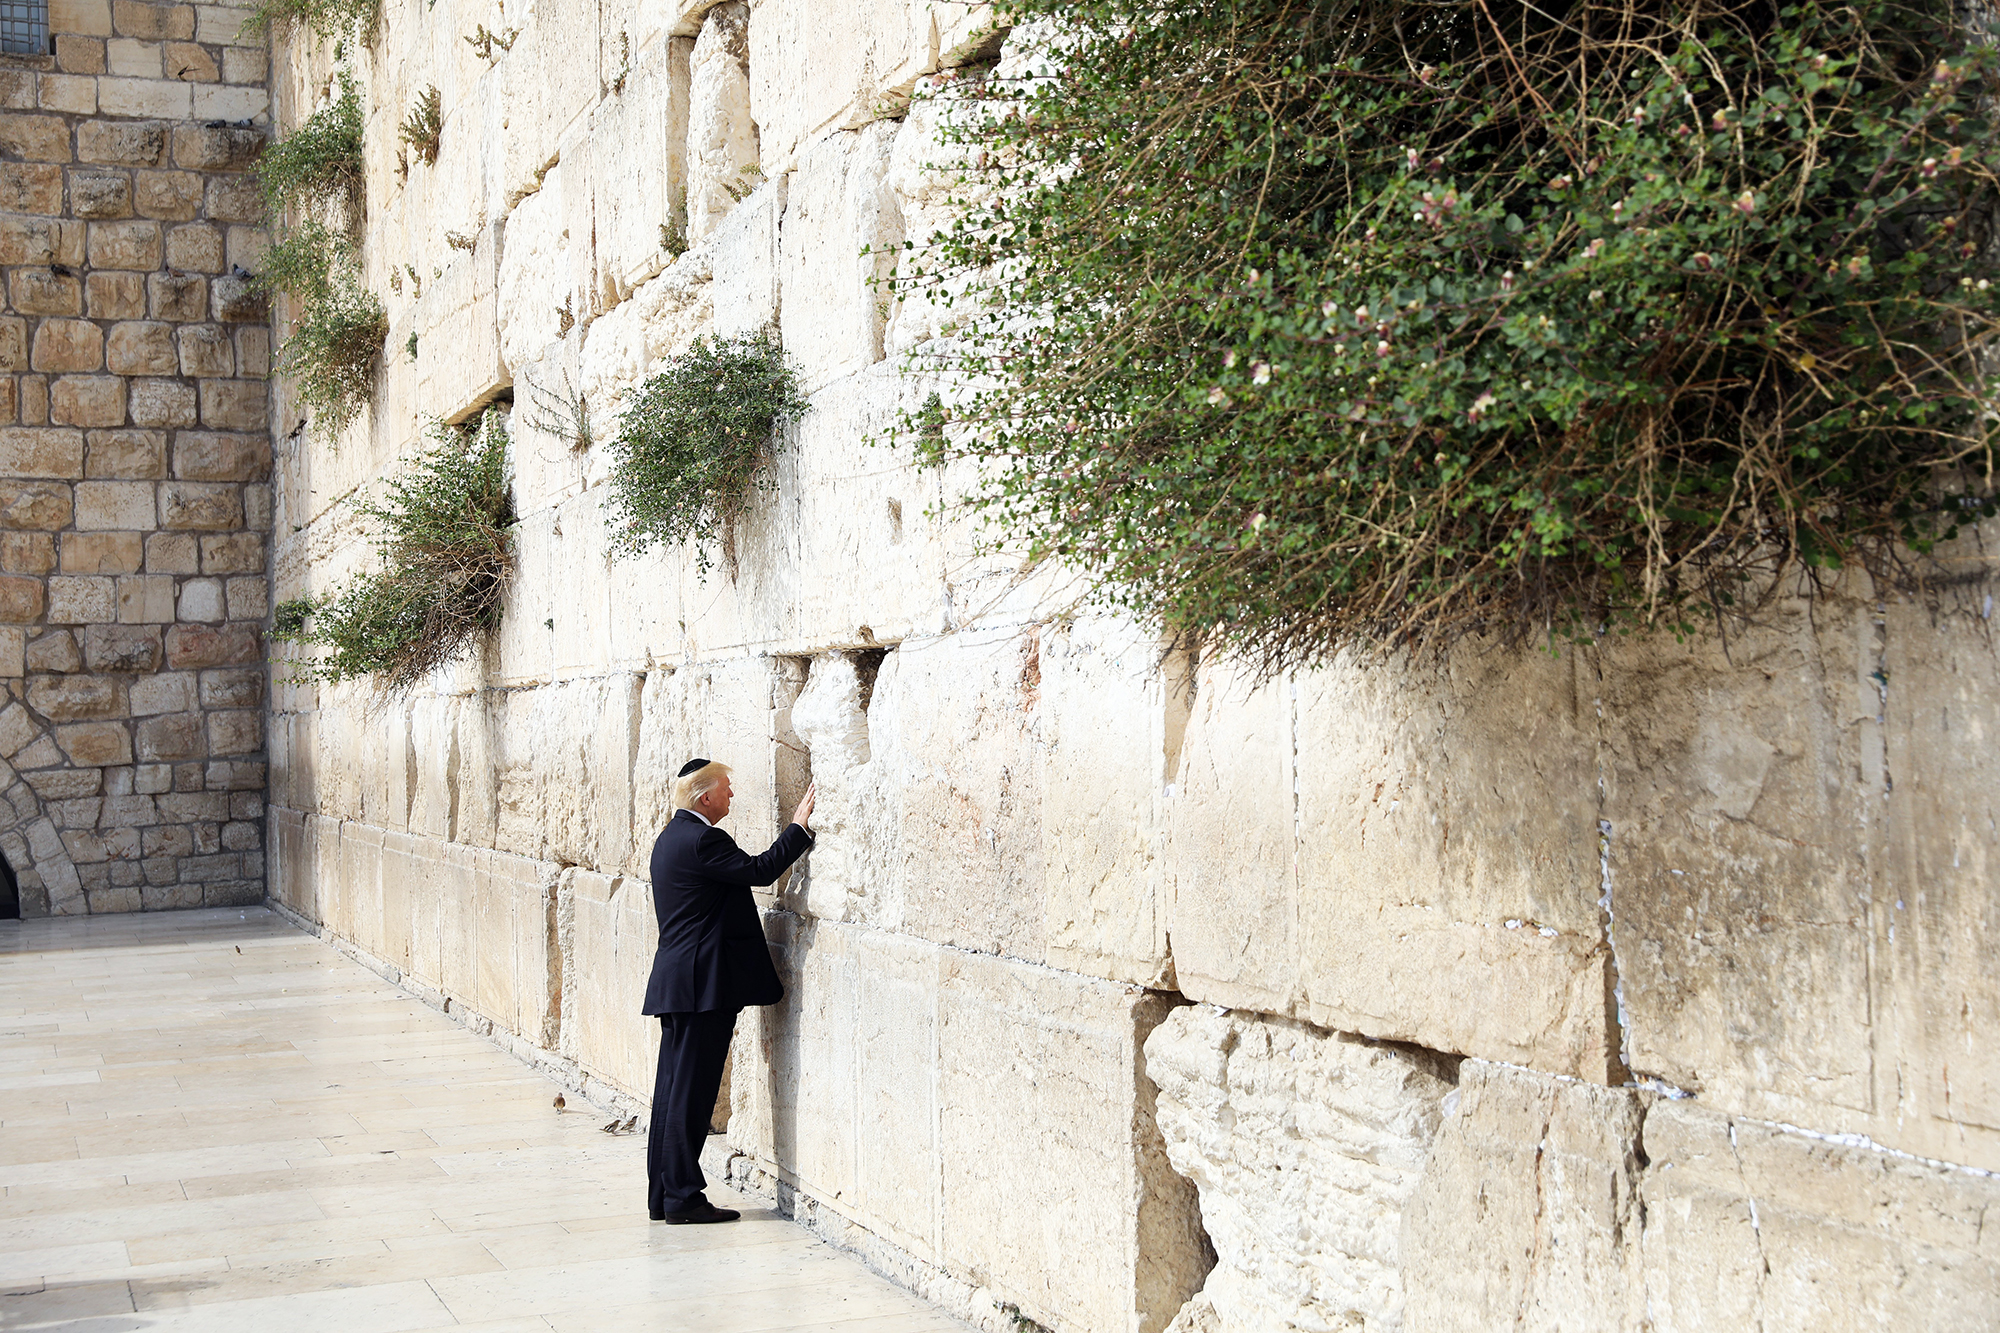 Donald Trump touches the Western Wall, Judaism's holiest prayer site, in Jerusalem's Old City, on May 22, 2017.